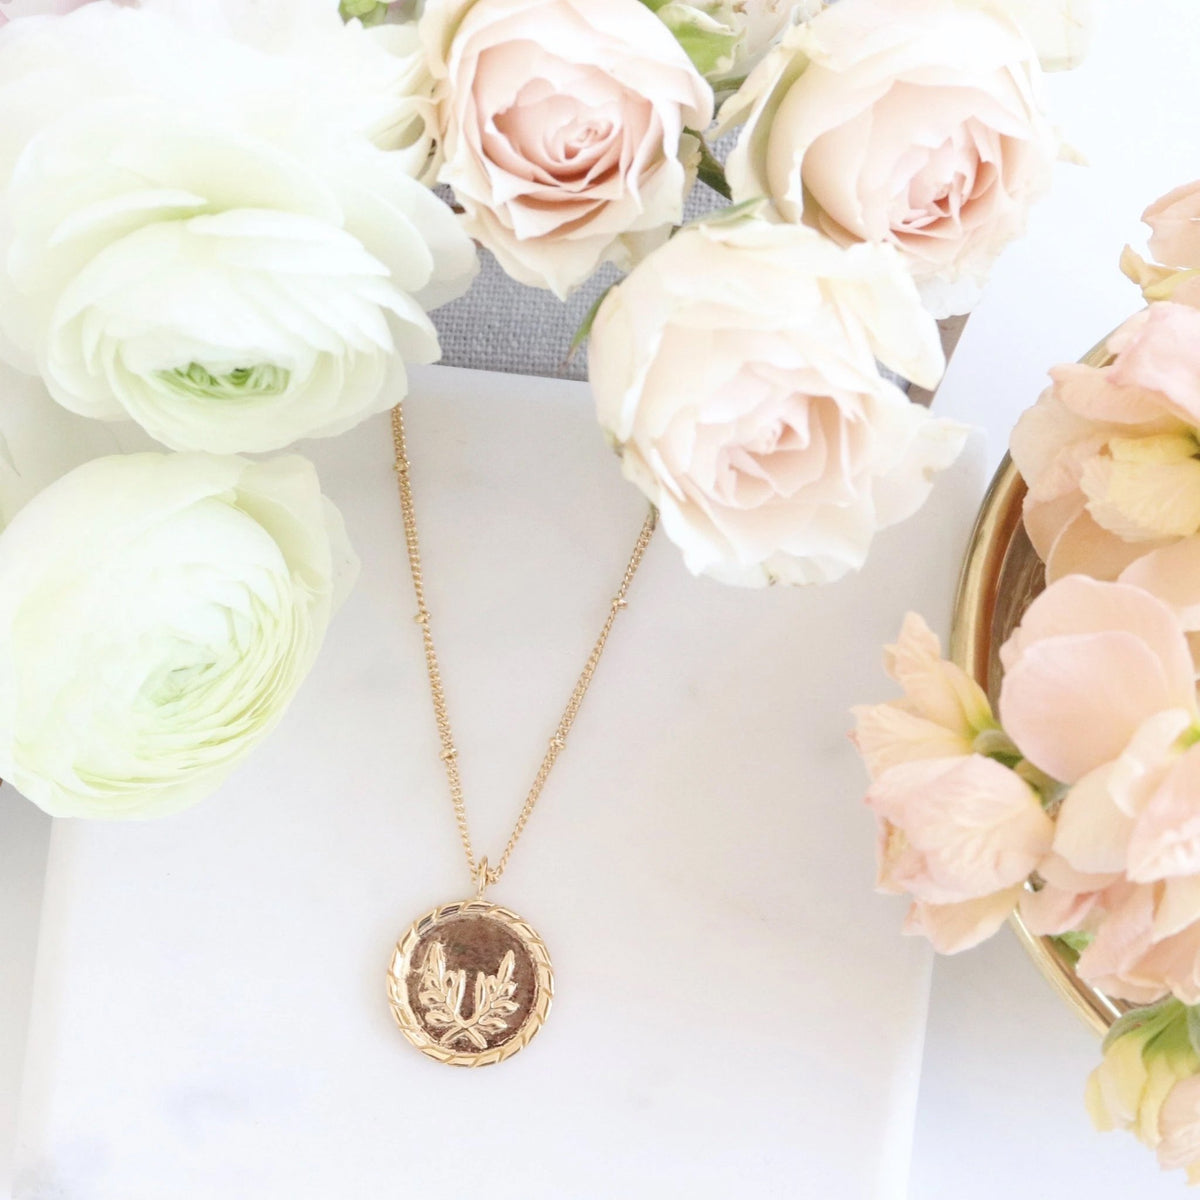 FRAICHE INSPIRE TOKEN NECKLACE - GOLD - SO PRETTY CARA COTTER